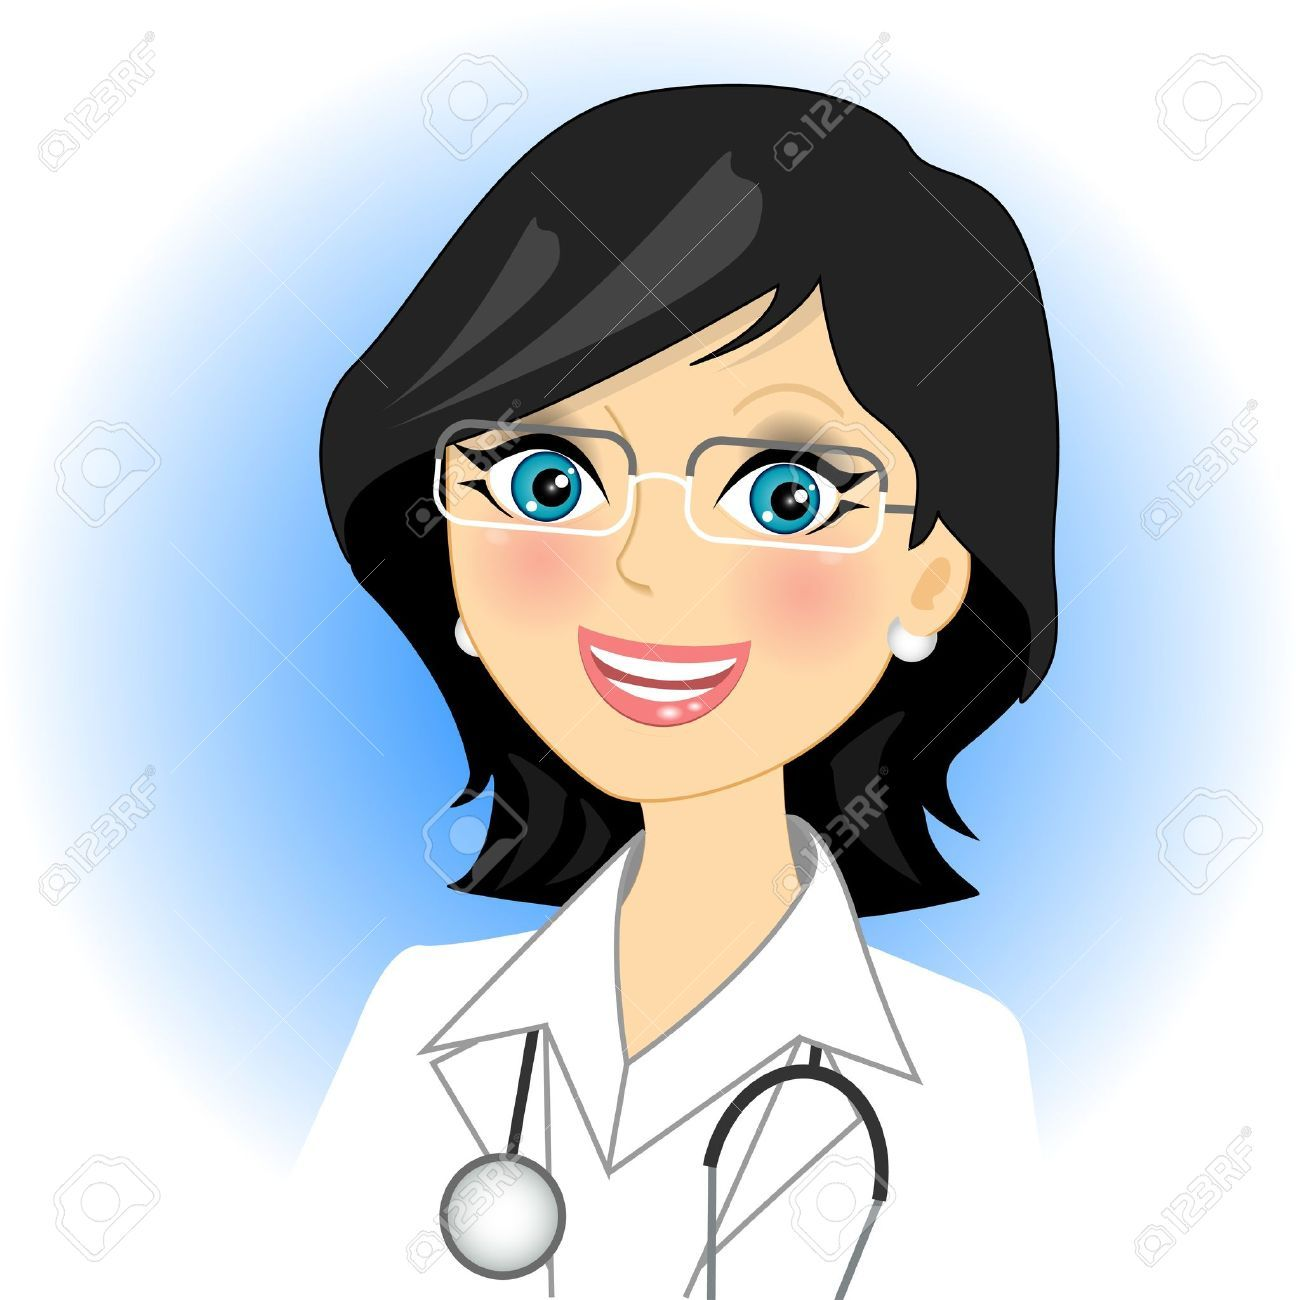 Doctor And Patient Cliparts Stock Vector And Royalty Free Doctor And Patient Illustrations Cartoon Girl Images Doctor Drawing Illustration